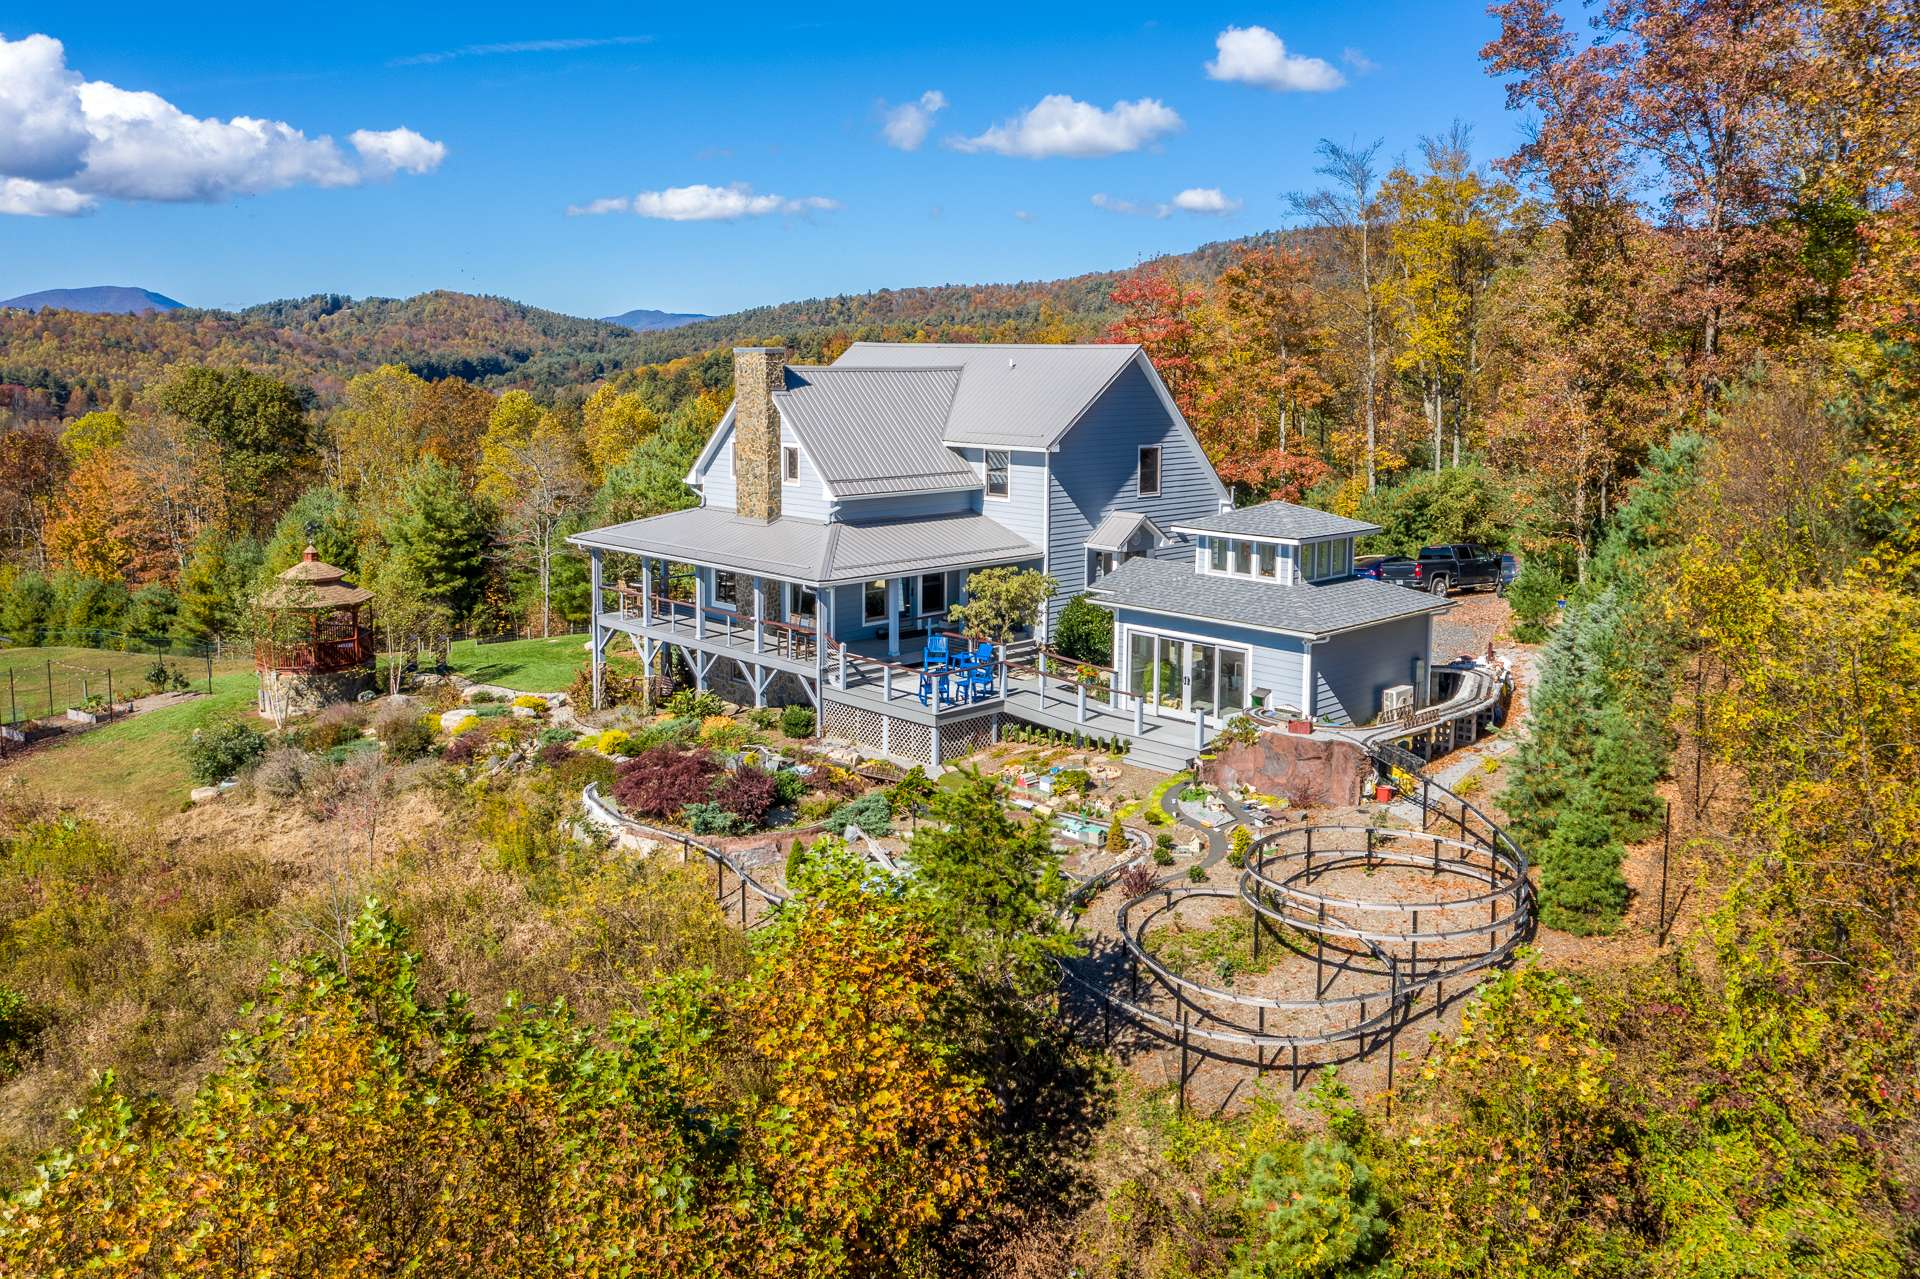 Gated and secluded, this craftsman style home is perched upon a magnificent 24+ acre setting  in the Laurel Springs area of the Blue Ridge  Mountains of North Carolina.